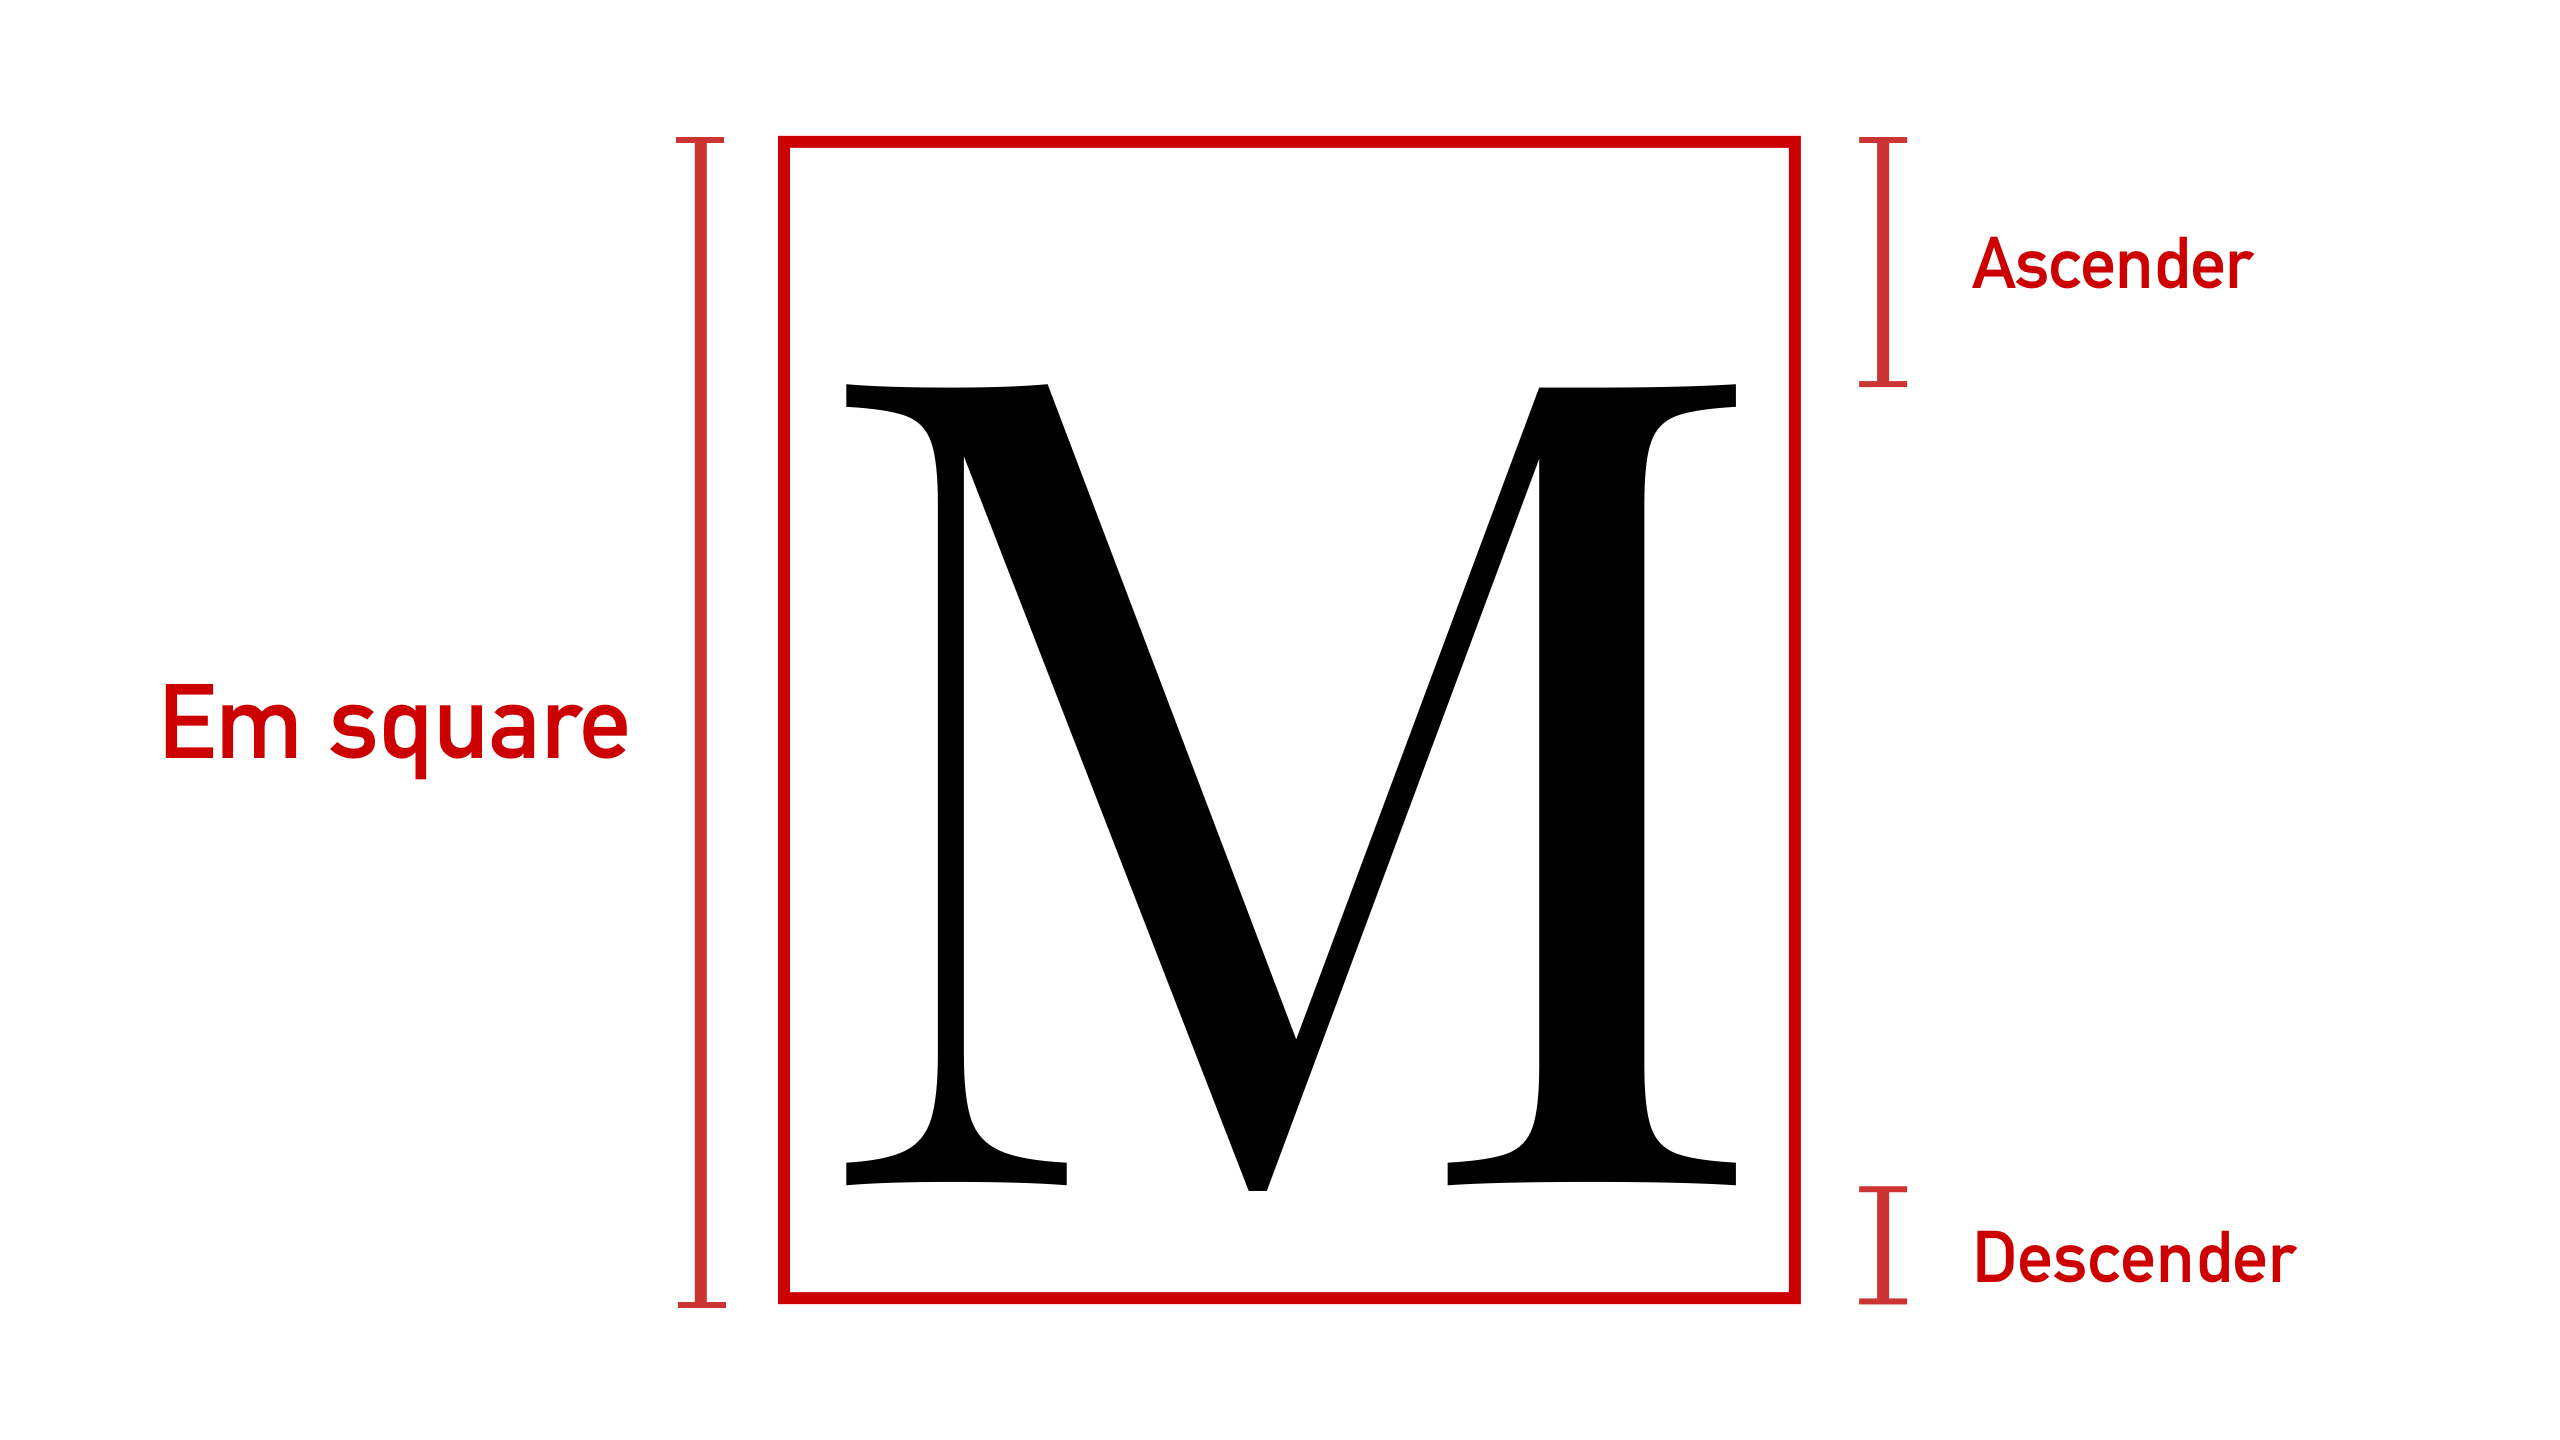 In a typeface, an em square is the box upon which a single glyph is drawn. There is space reserved at the top and bottom of the square for a glyph's ascenders or descenders.